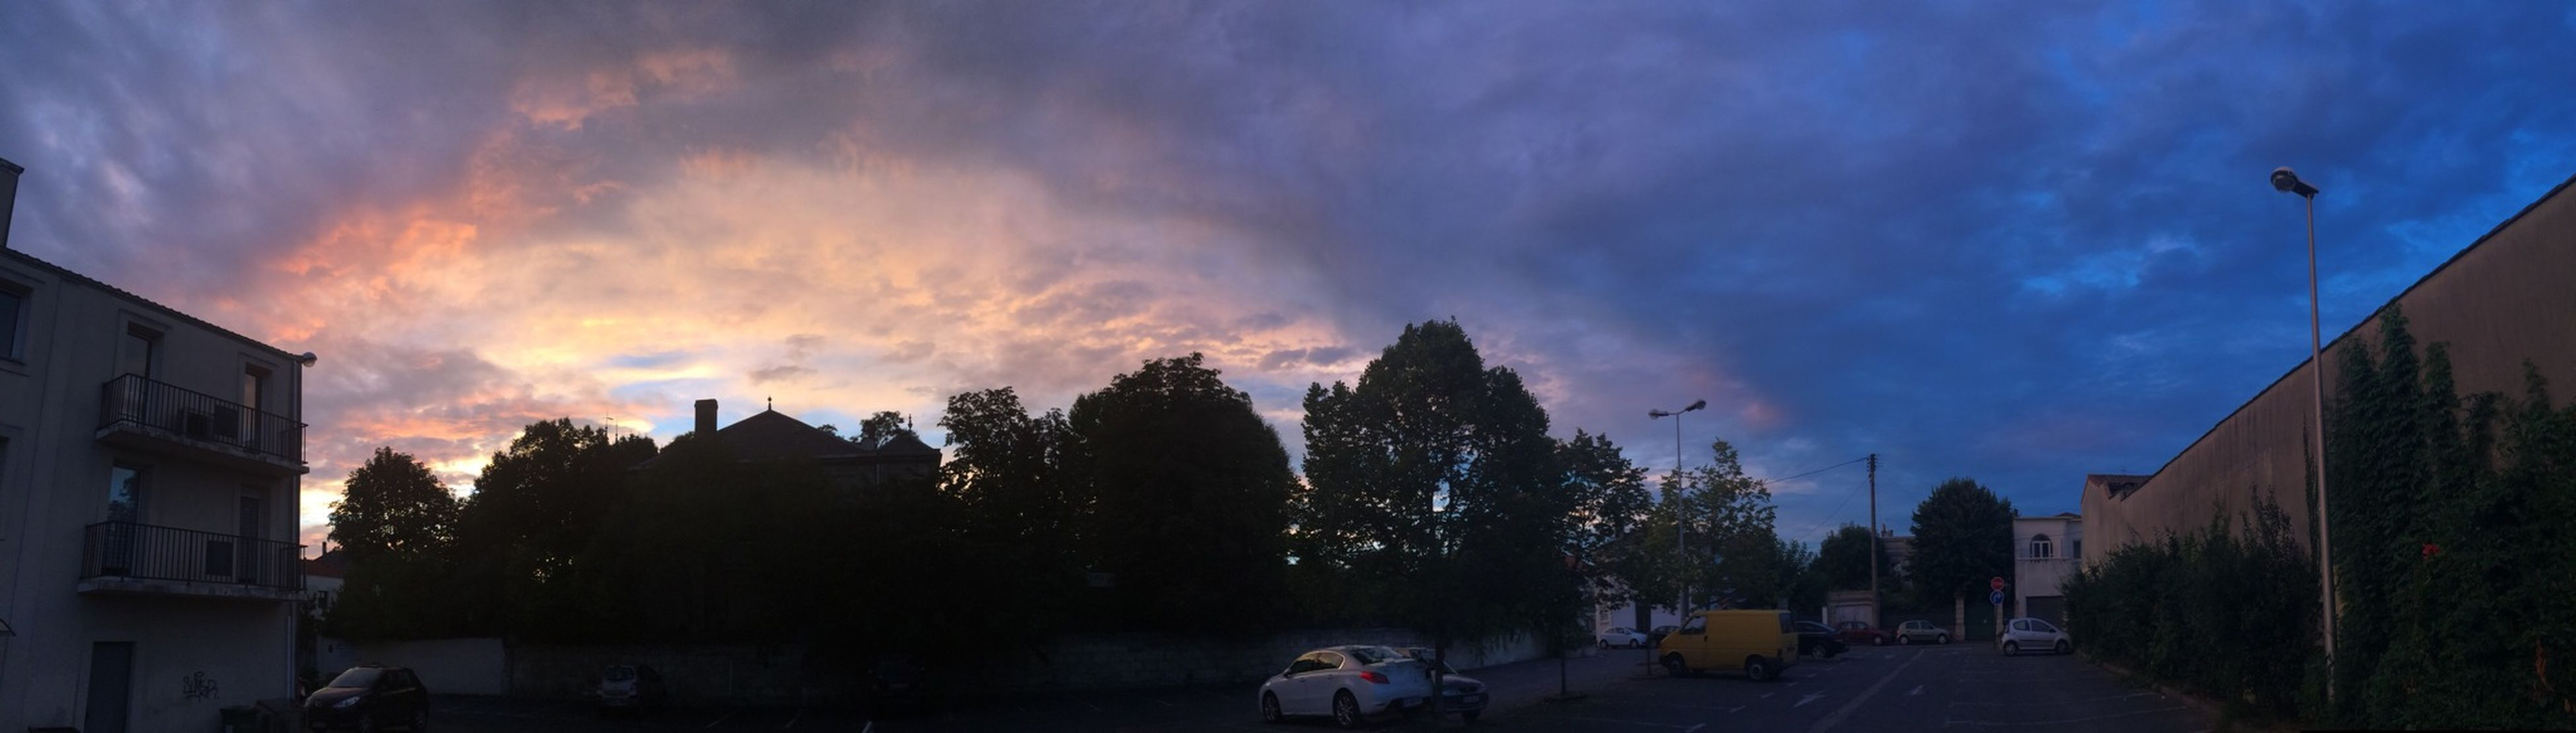 sky, building exterior, cloud - sky, built structure, architecture, silhouette, sunset, street, dusk, tree, cloud, car, cloudy, road, house, city, residential structure, transportation, outdoors, residential building